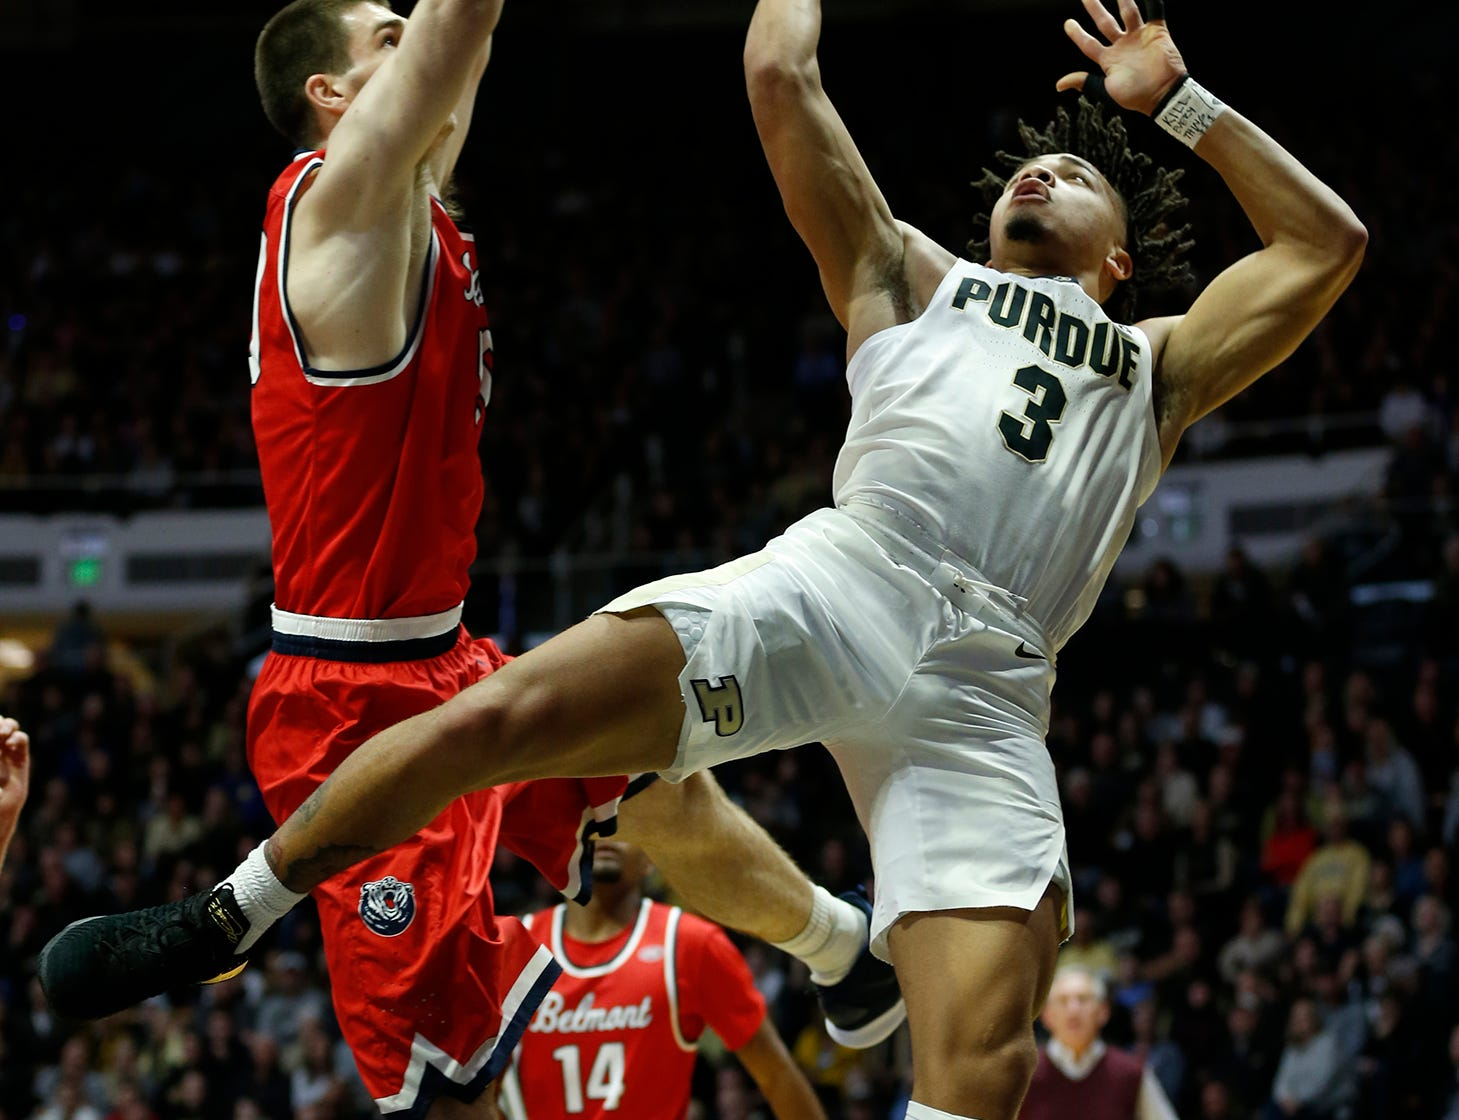 Carsen Edwards of Purdue with a shot against Seth Adelsperger of Belmont Saturday, December 29, 2018, at Mackey Arena. Purdue defeated Belmont 73-62.